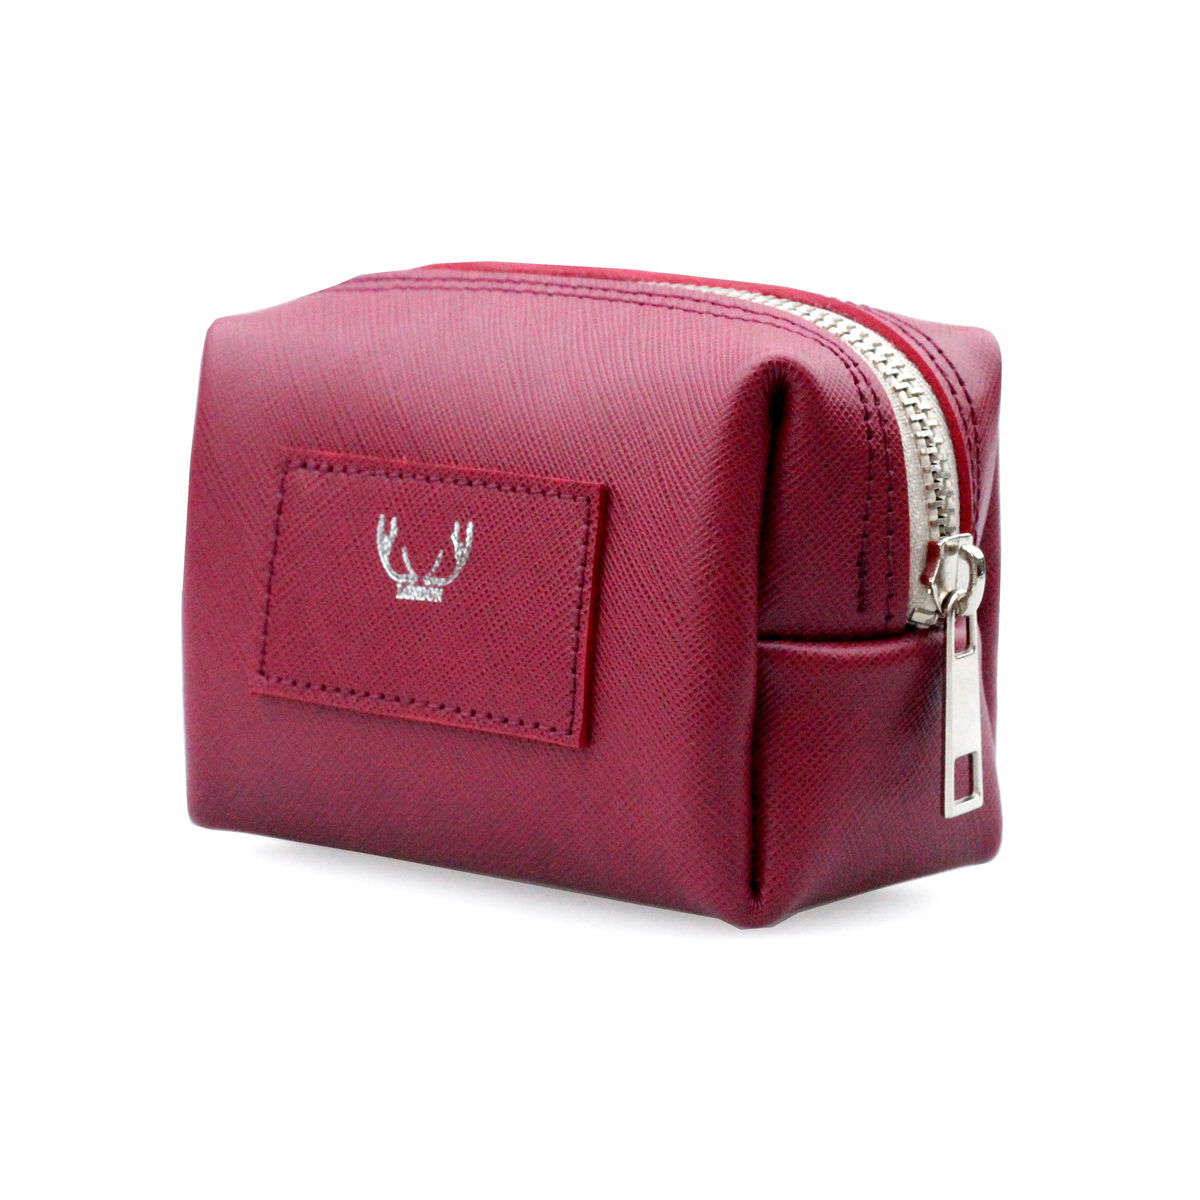 *NEW* Berry Petite Millie Cosmetic Bag - product images  of